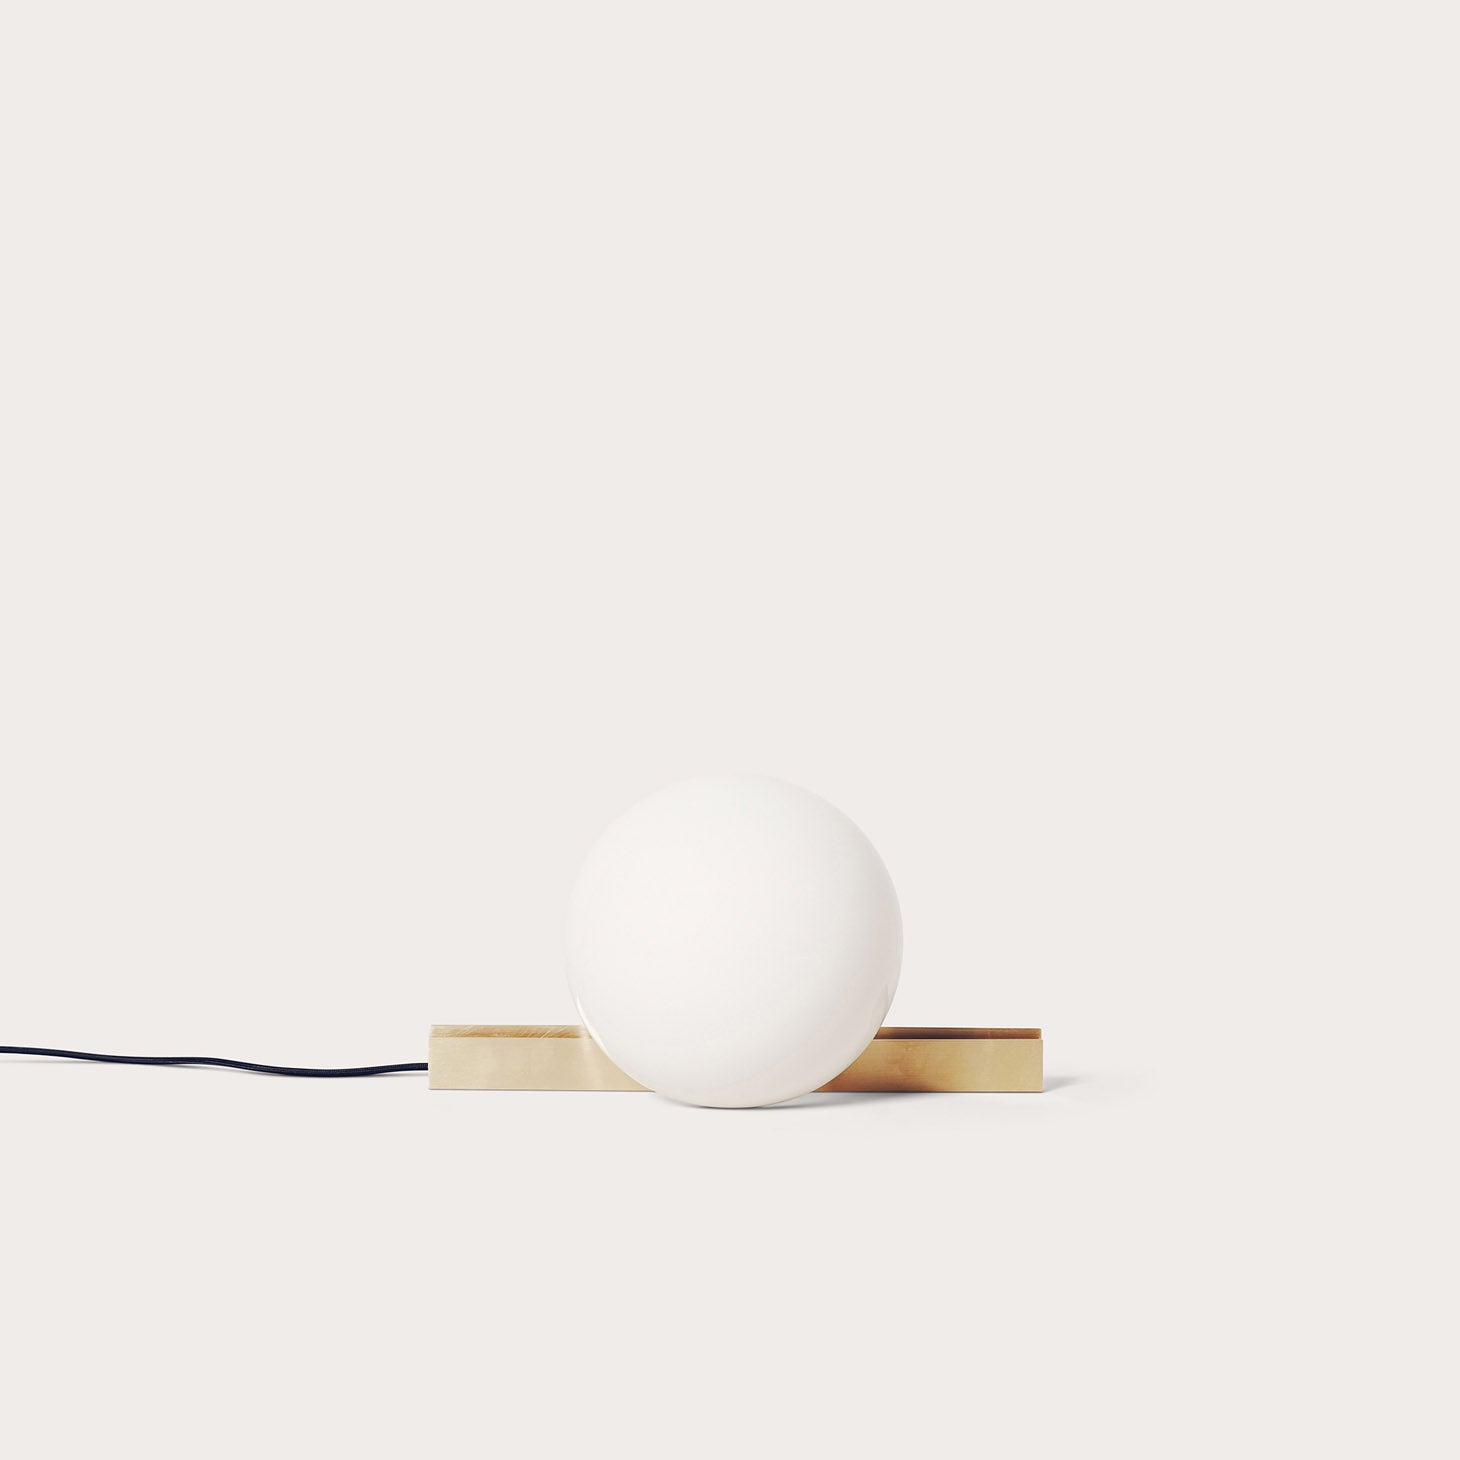 Rest Lighting Michael Anastassiades Designer Furniture Sku: 717-160-10009